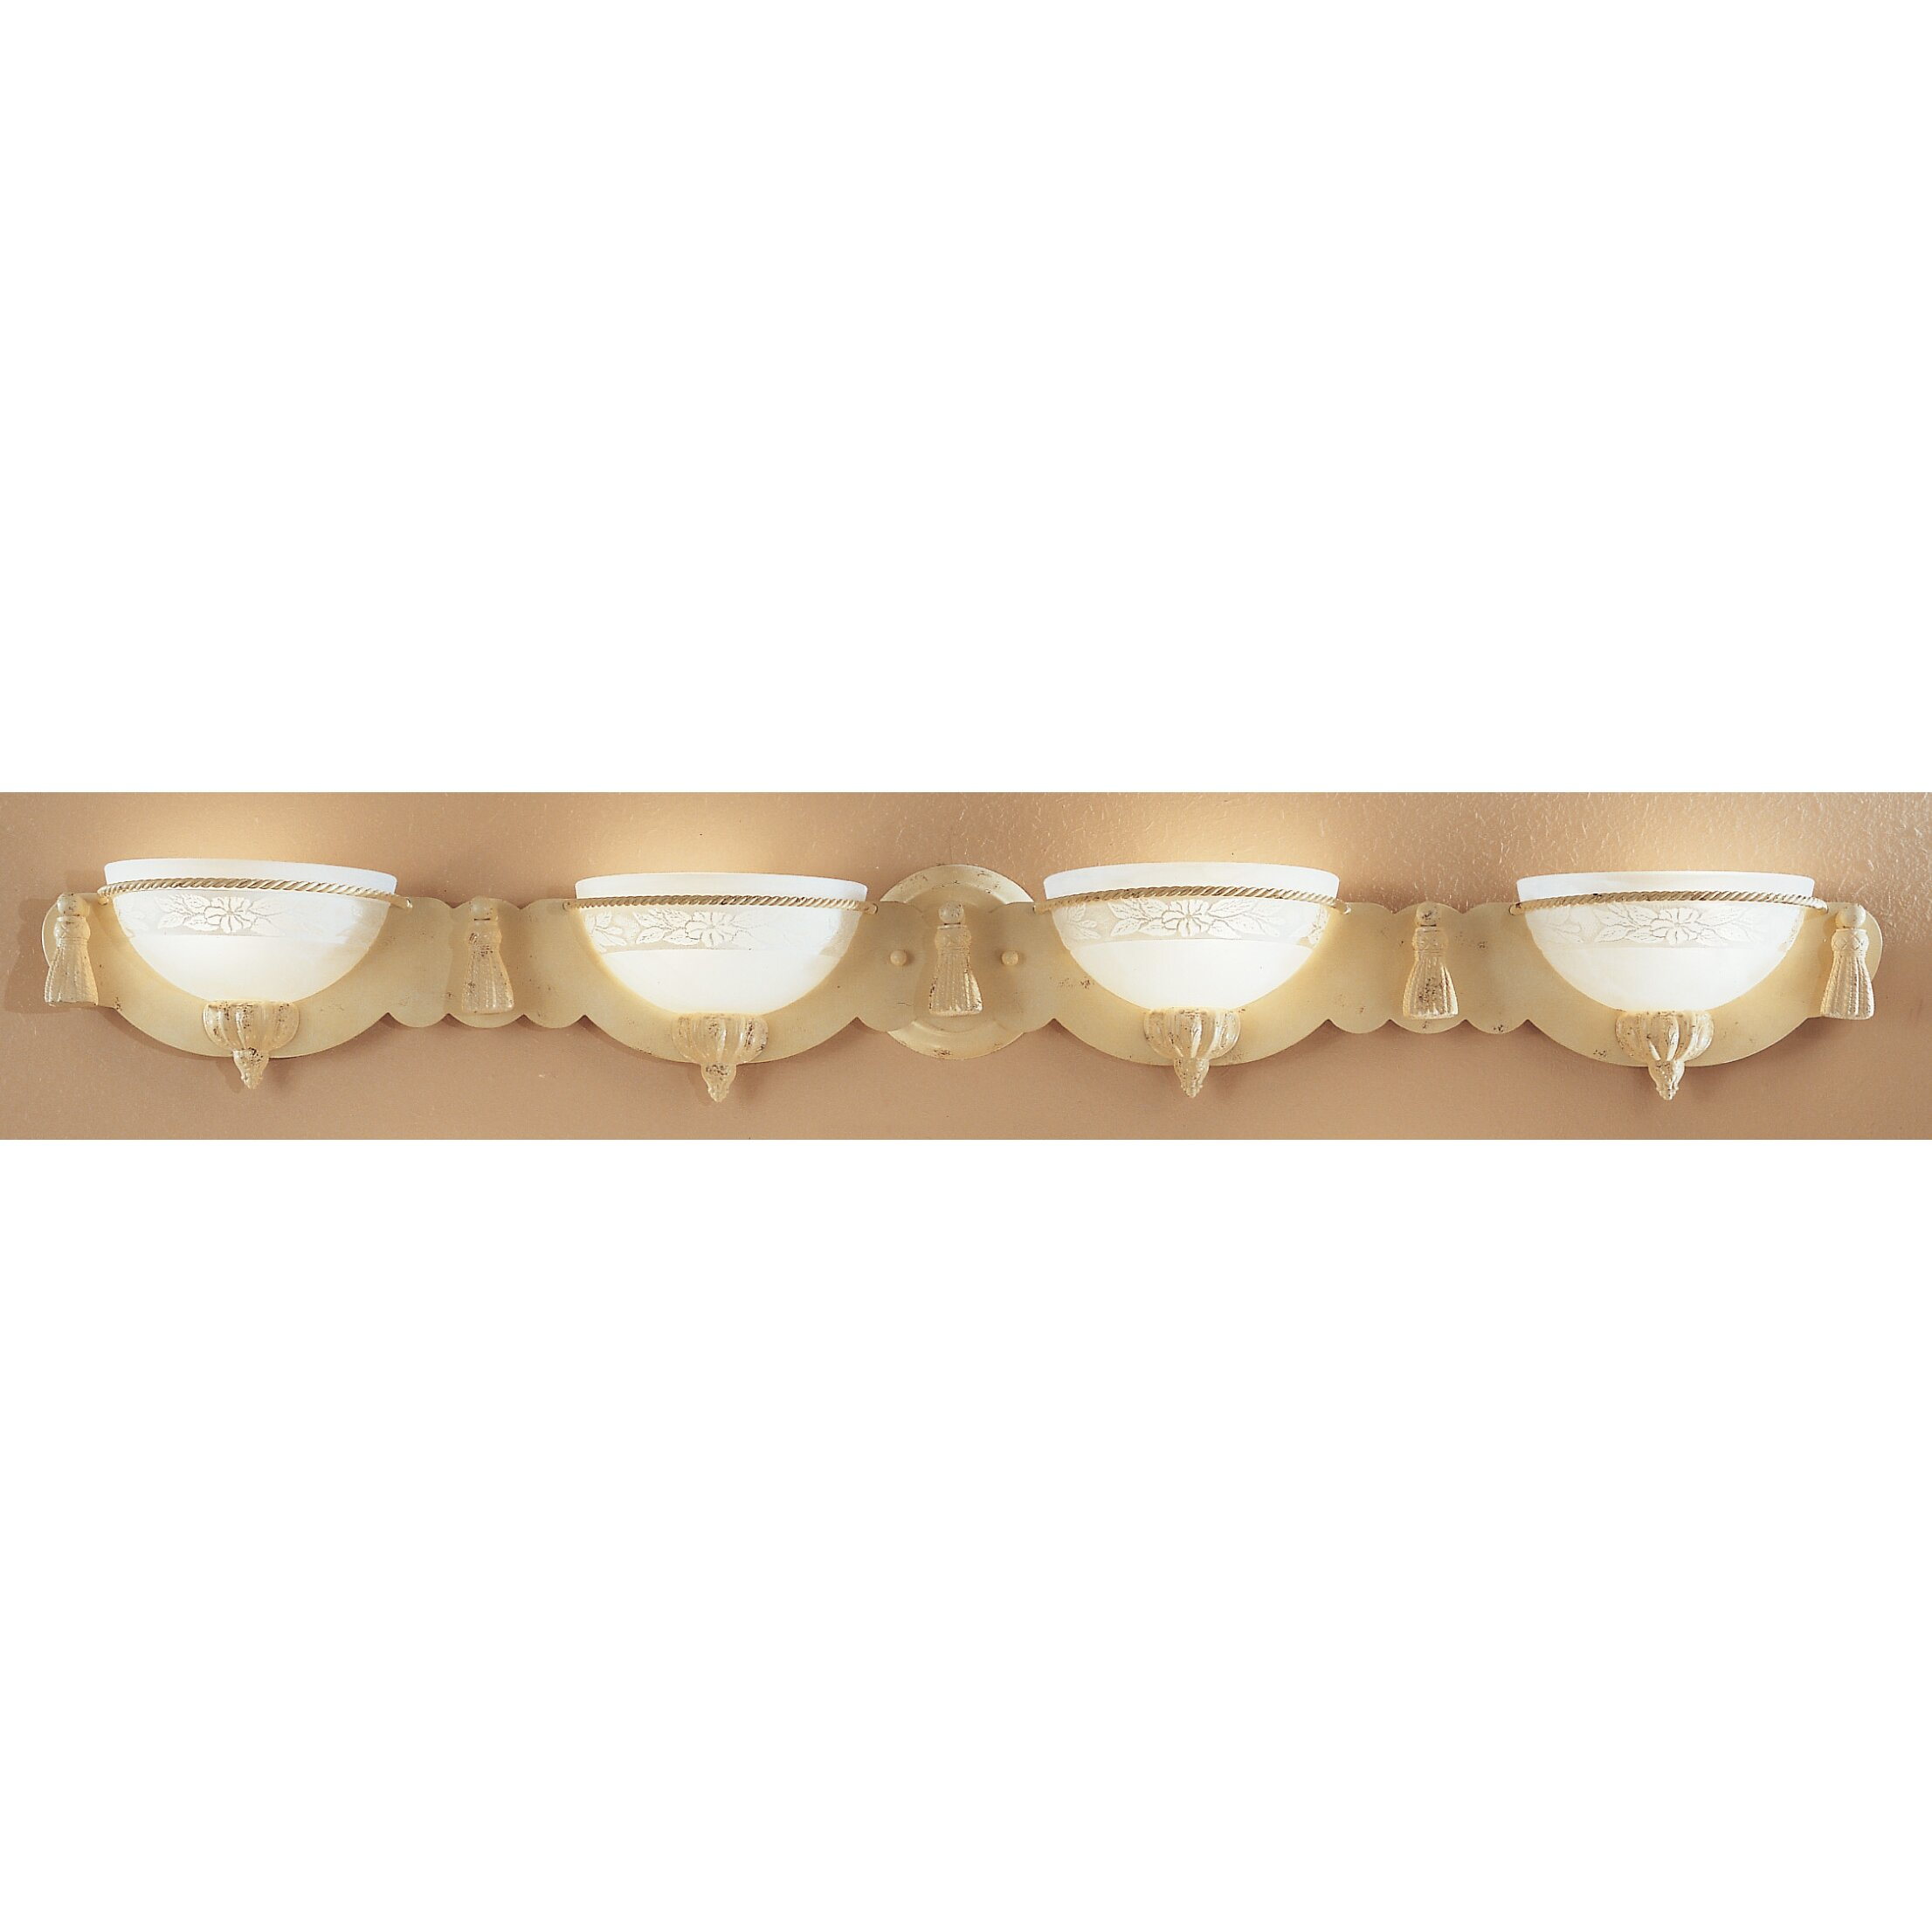 Excellent This Flexible Rope Lighting Can Be Used Anywhere You Need Decorative Lighting Its Ideal For Cove Or Cabinet Lighting, Illuminating Handrails, Toe Kick Areas In The Bath Or Kitchen And More 1 Inch Bulb Spacing With A Bulb Life Of 25,000